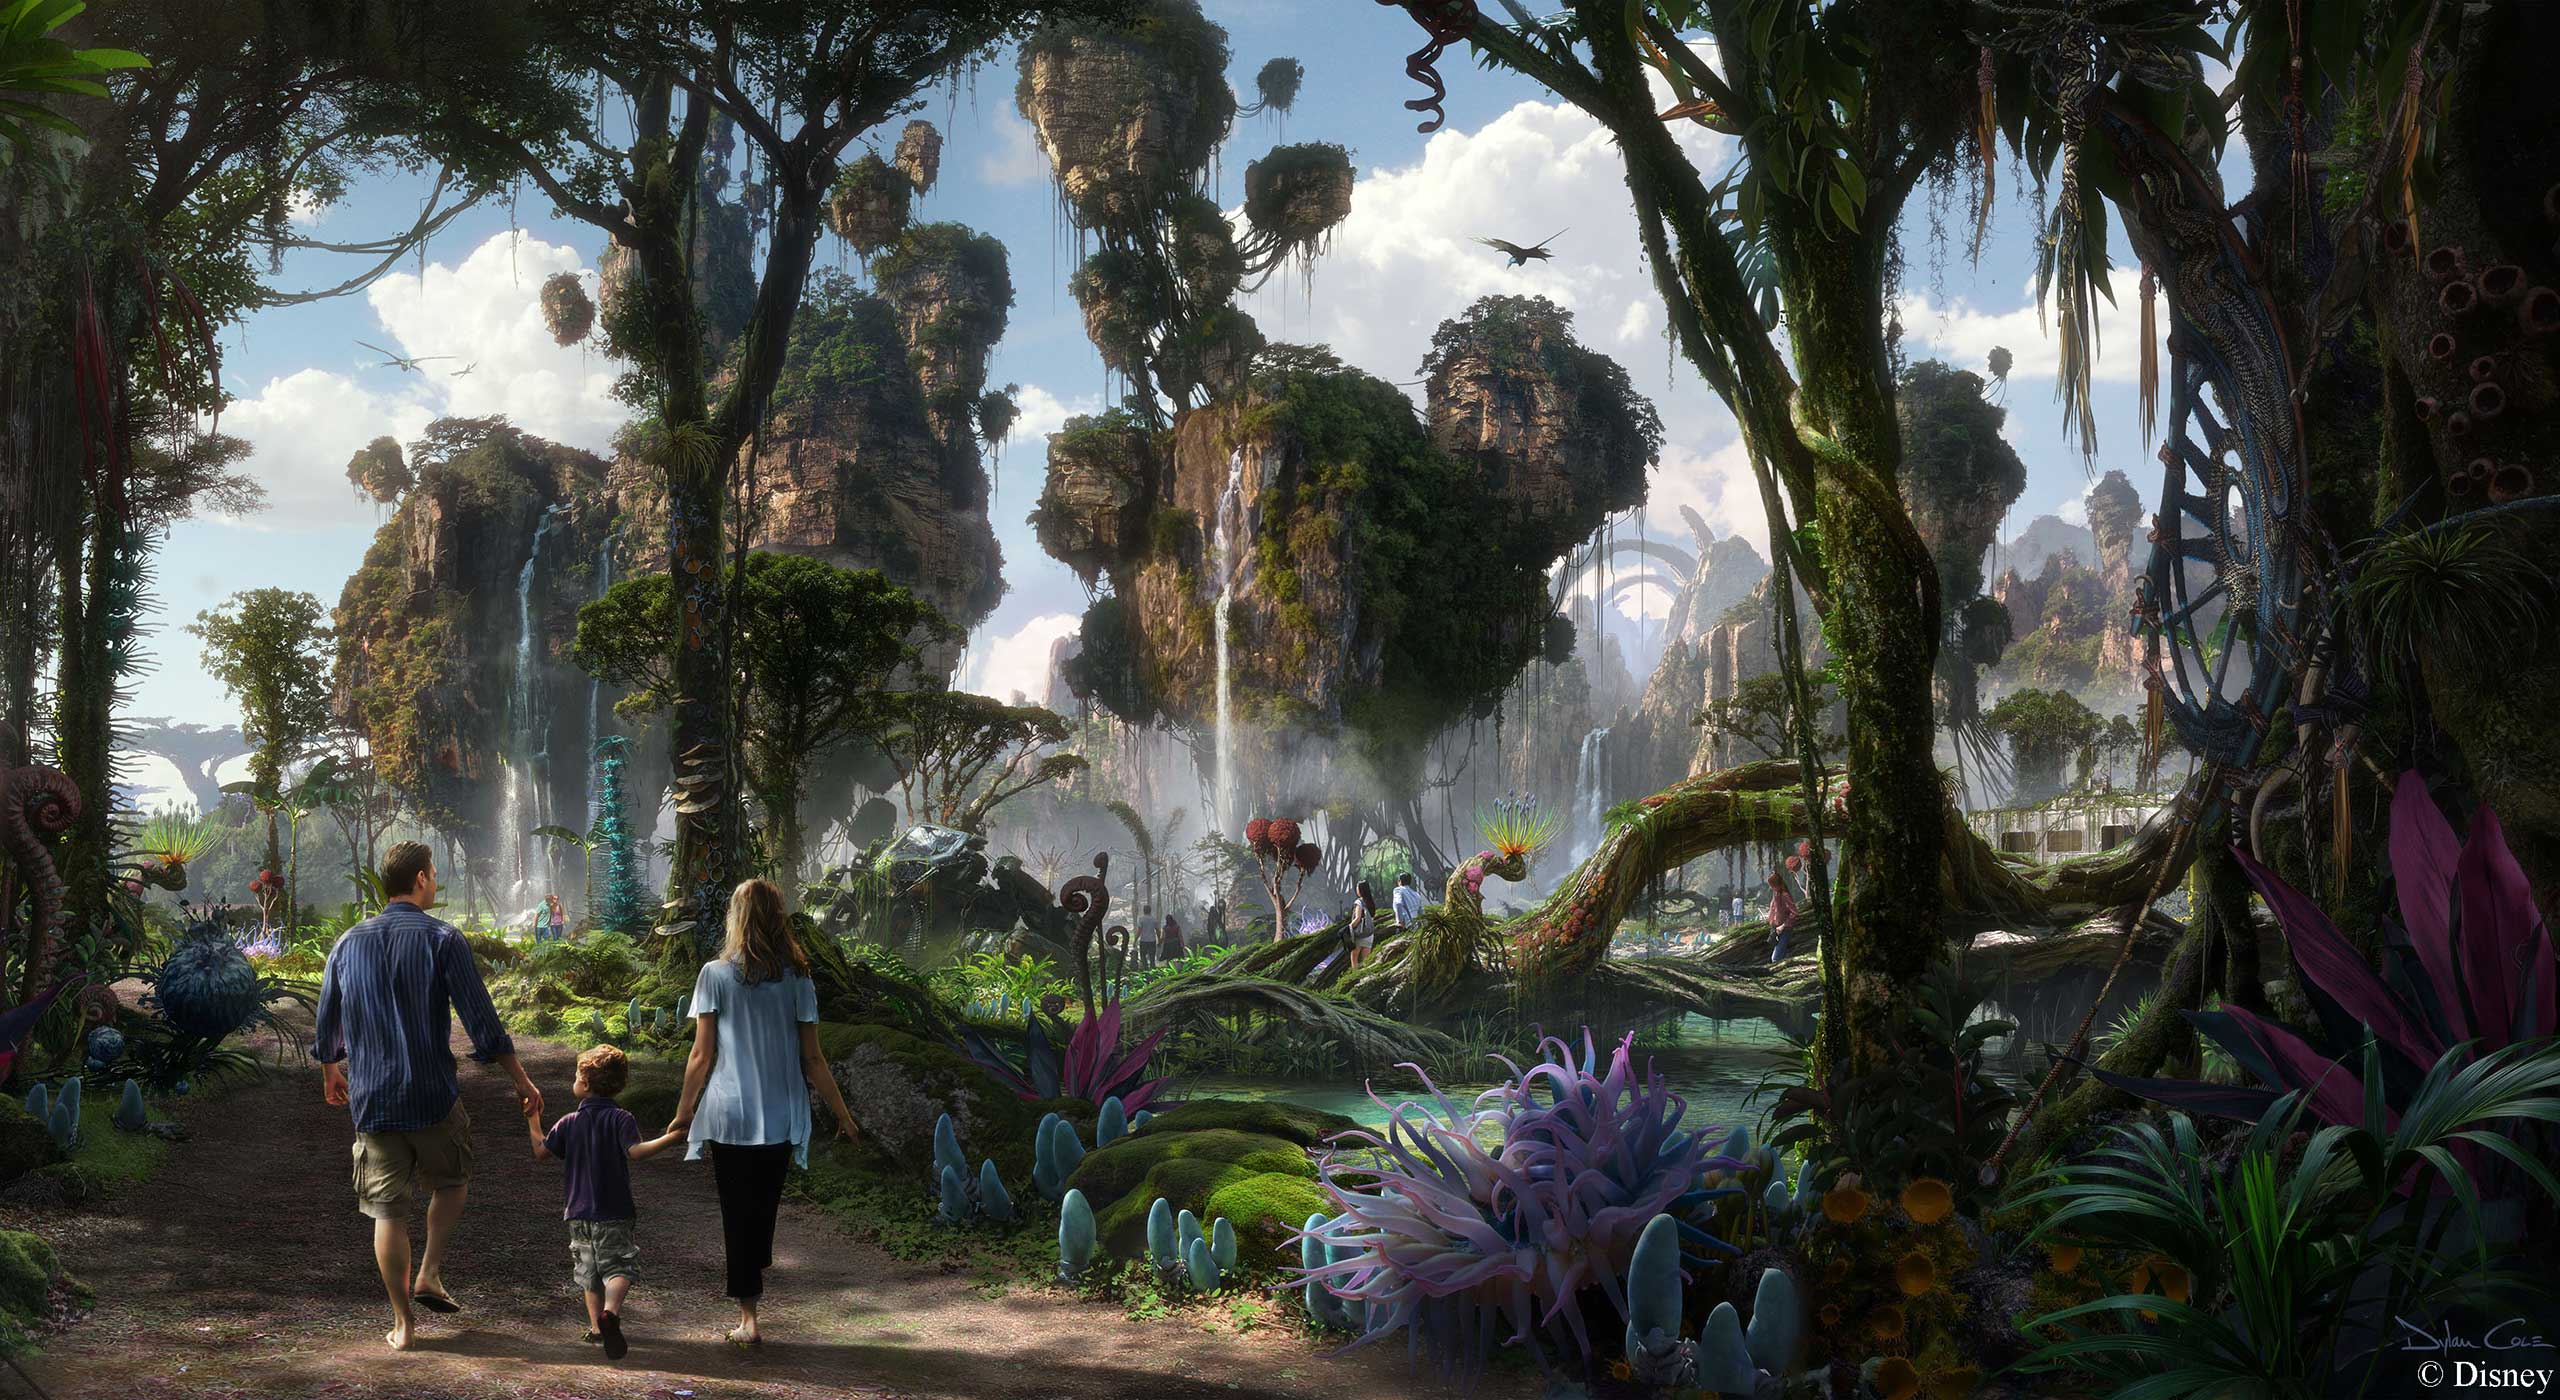 AVATAR Land concept art